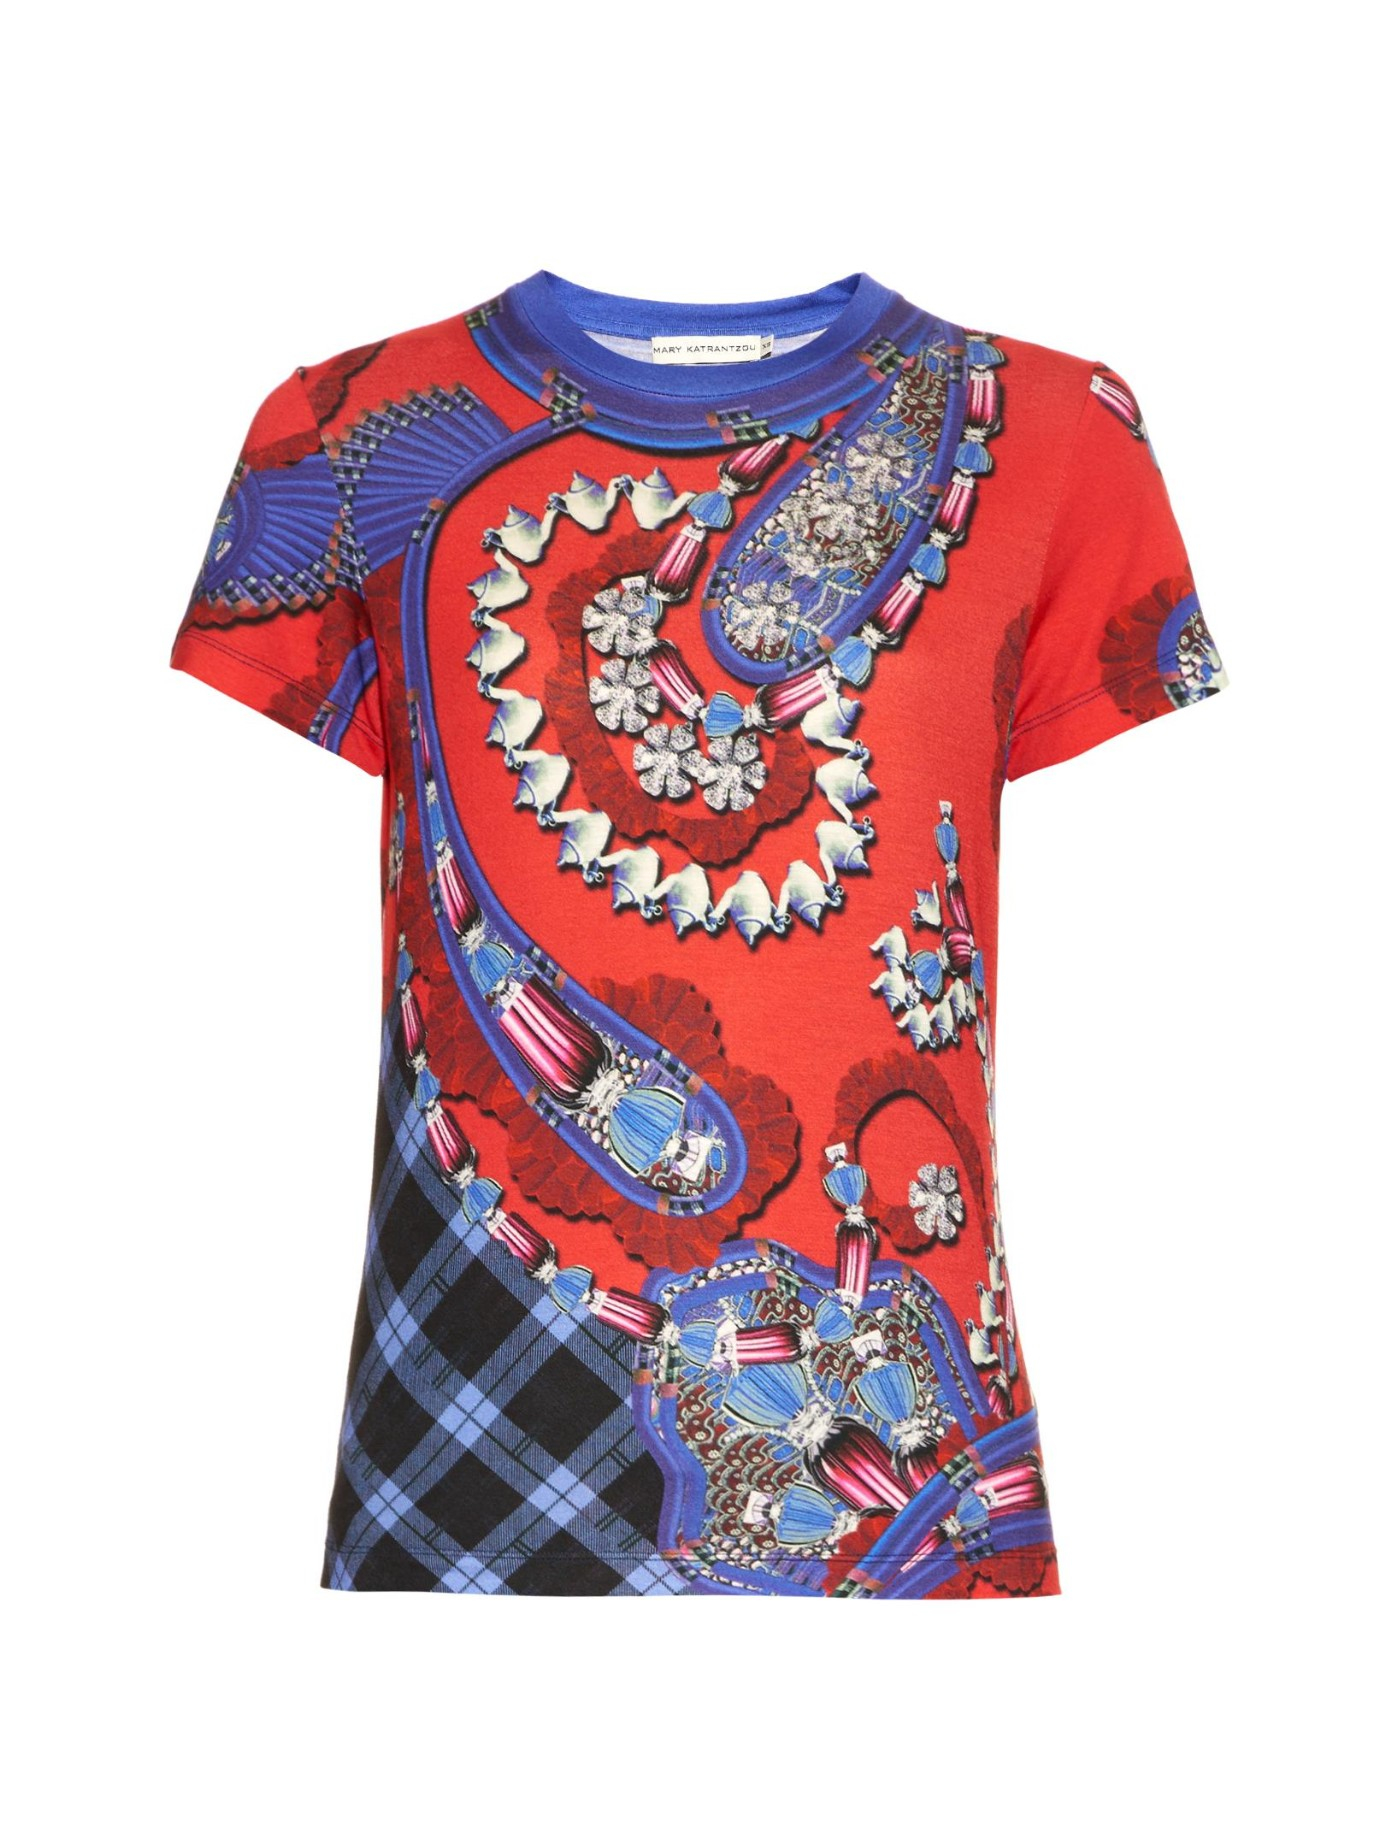 Lyst mary katrantzou mixed print t shirt in red for T shirt printing stonecrest mall